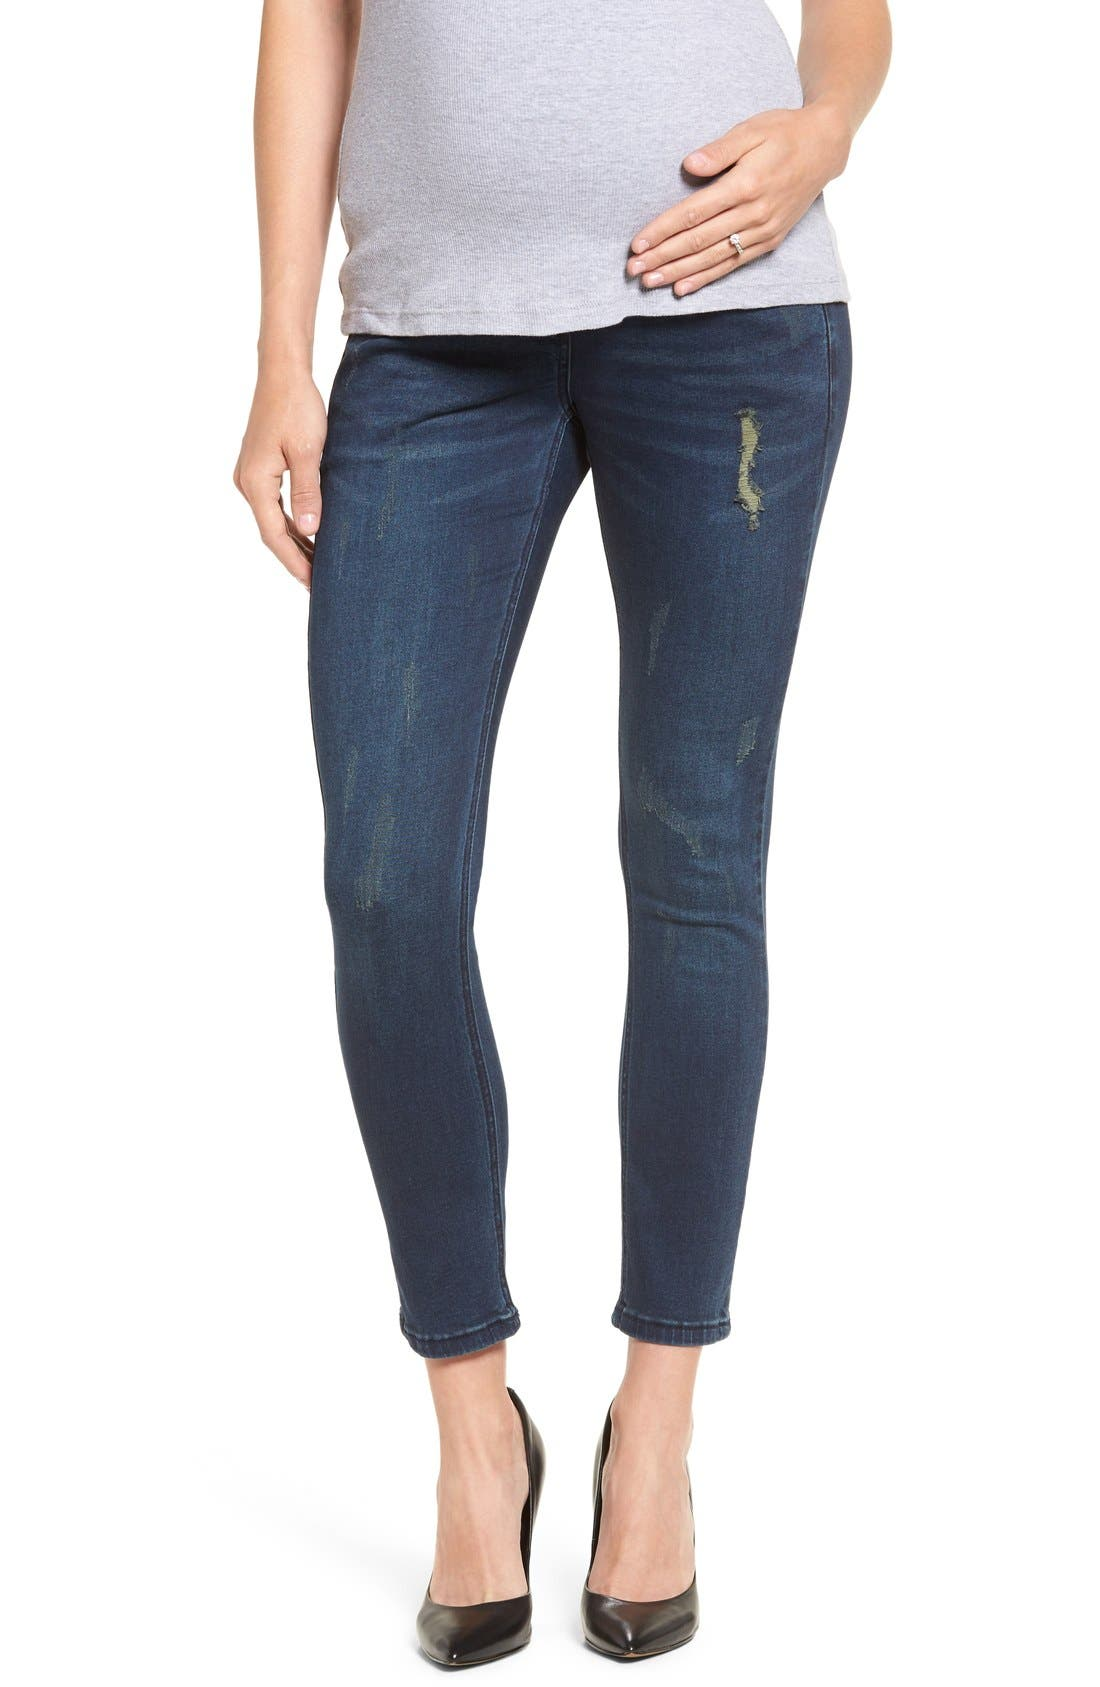 Alternate Image 1 Selected - The Urban Ma Distressed Skinny Maternity Jeans